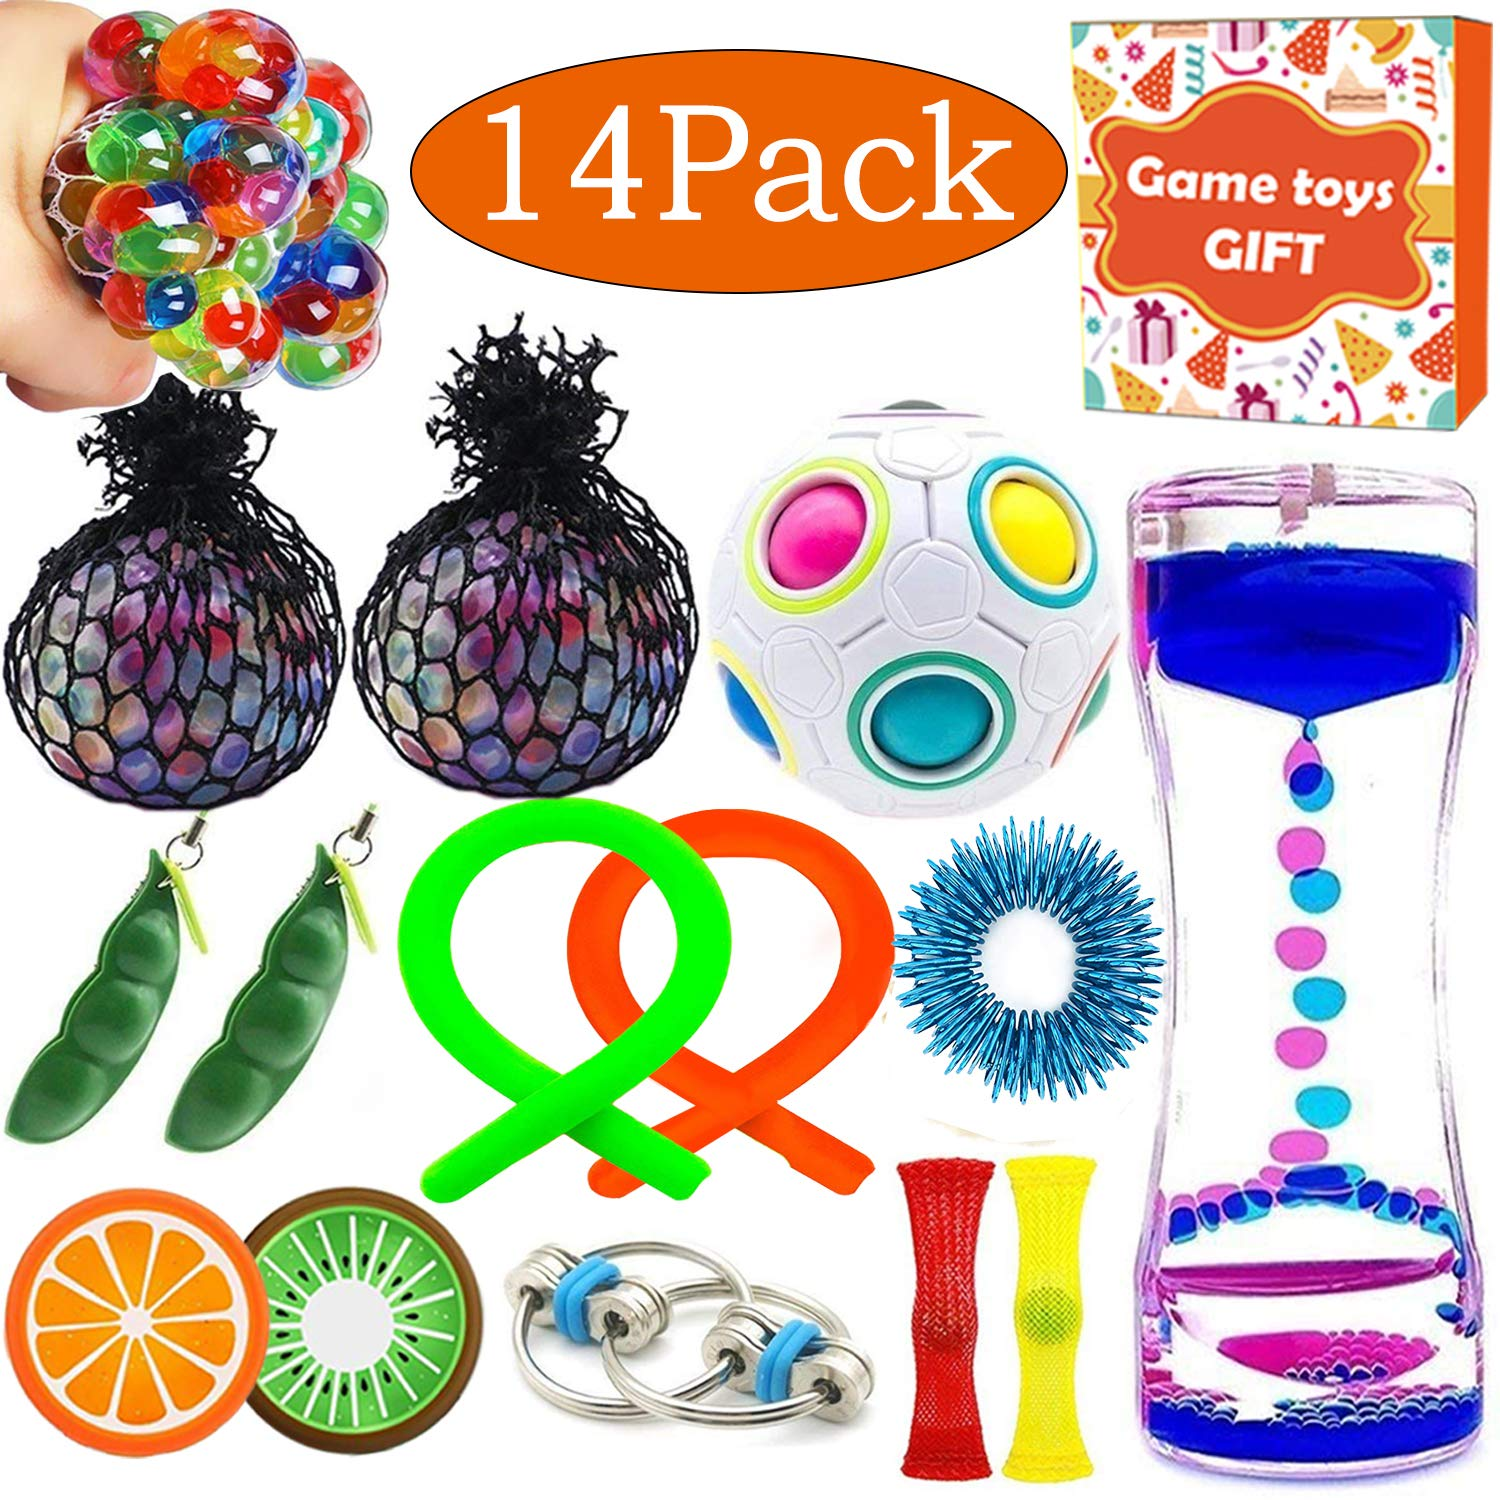 14 Pack Sensory Fidget Toys Bundle Liquid Motion Timer Bubbler Stretchy String Mesh Squeeze Balls Magic Cube Fruit Slime Stress Relieve Toys Halloween Party Favors for Kids Adult Autistic ADHD Anxiety